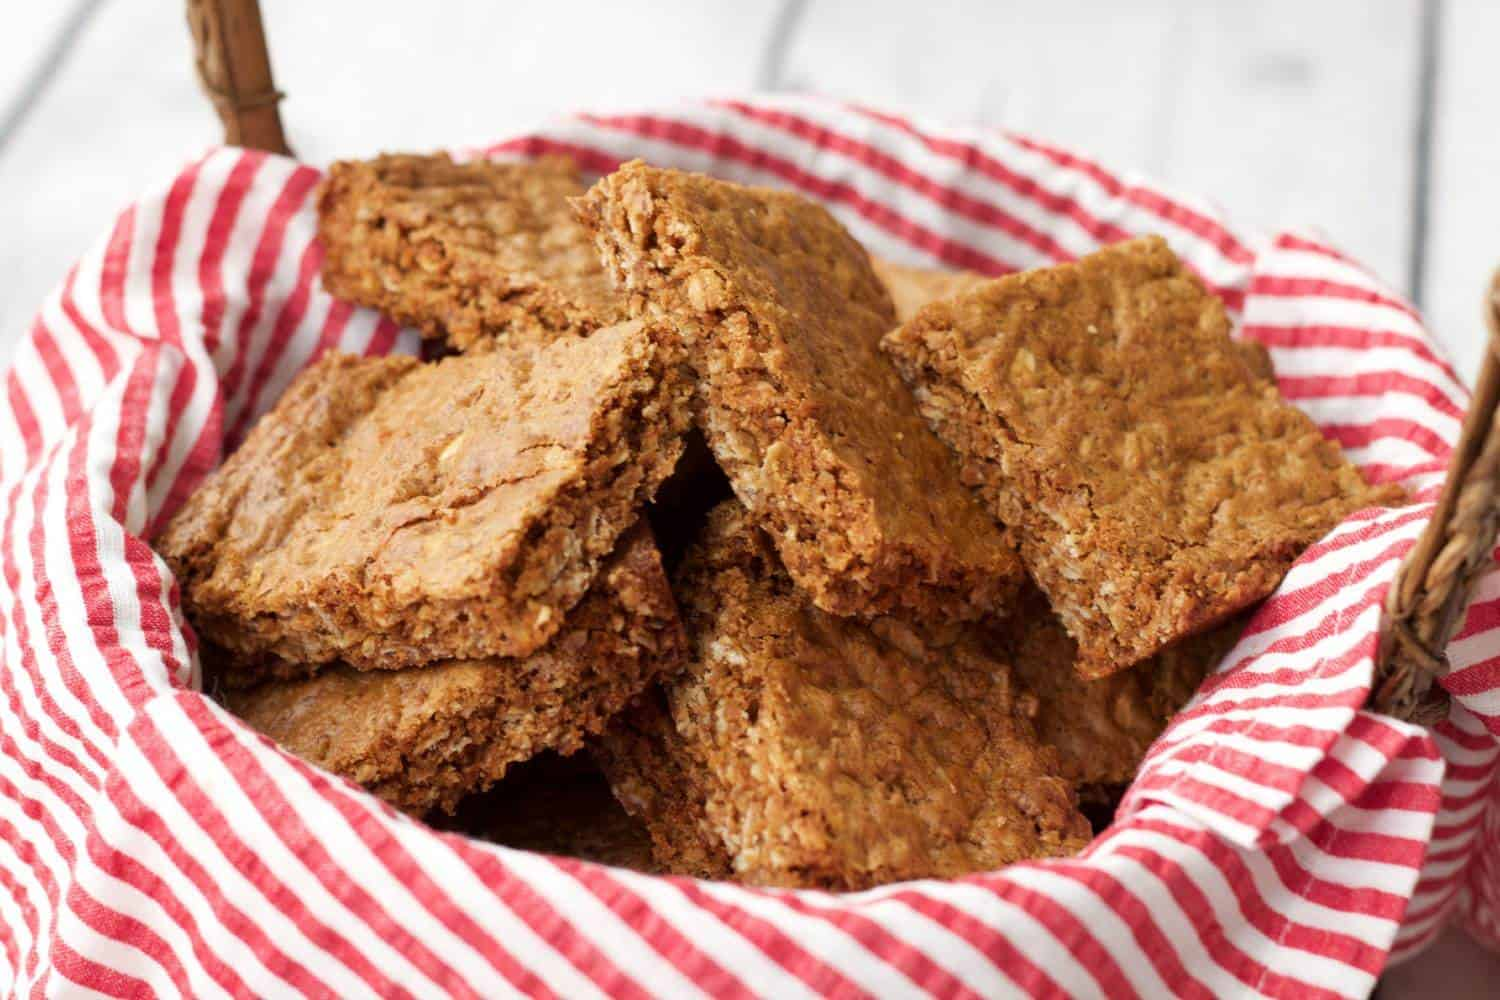 Hearty and wholesome South African Oatmeal Crunchies #vegan #dairy-free #lovingitvegan